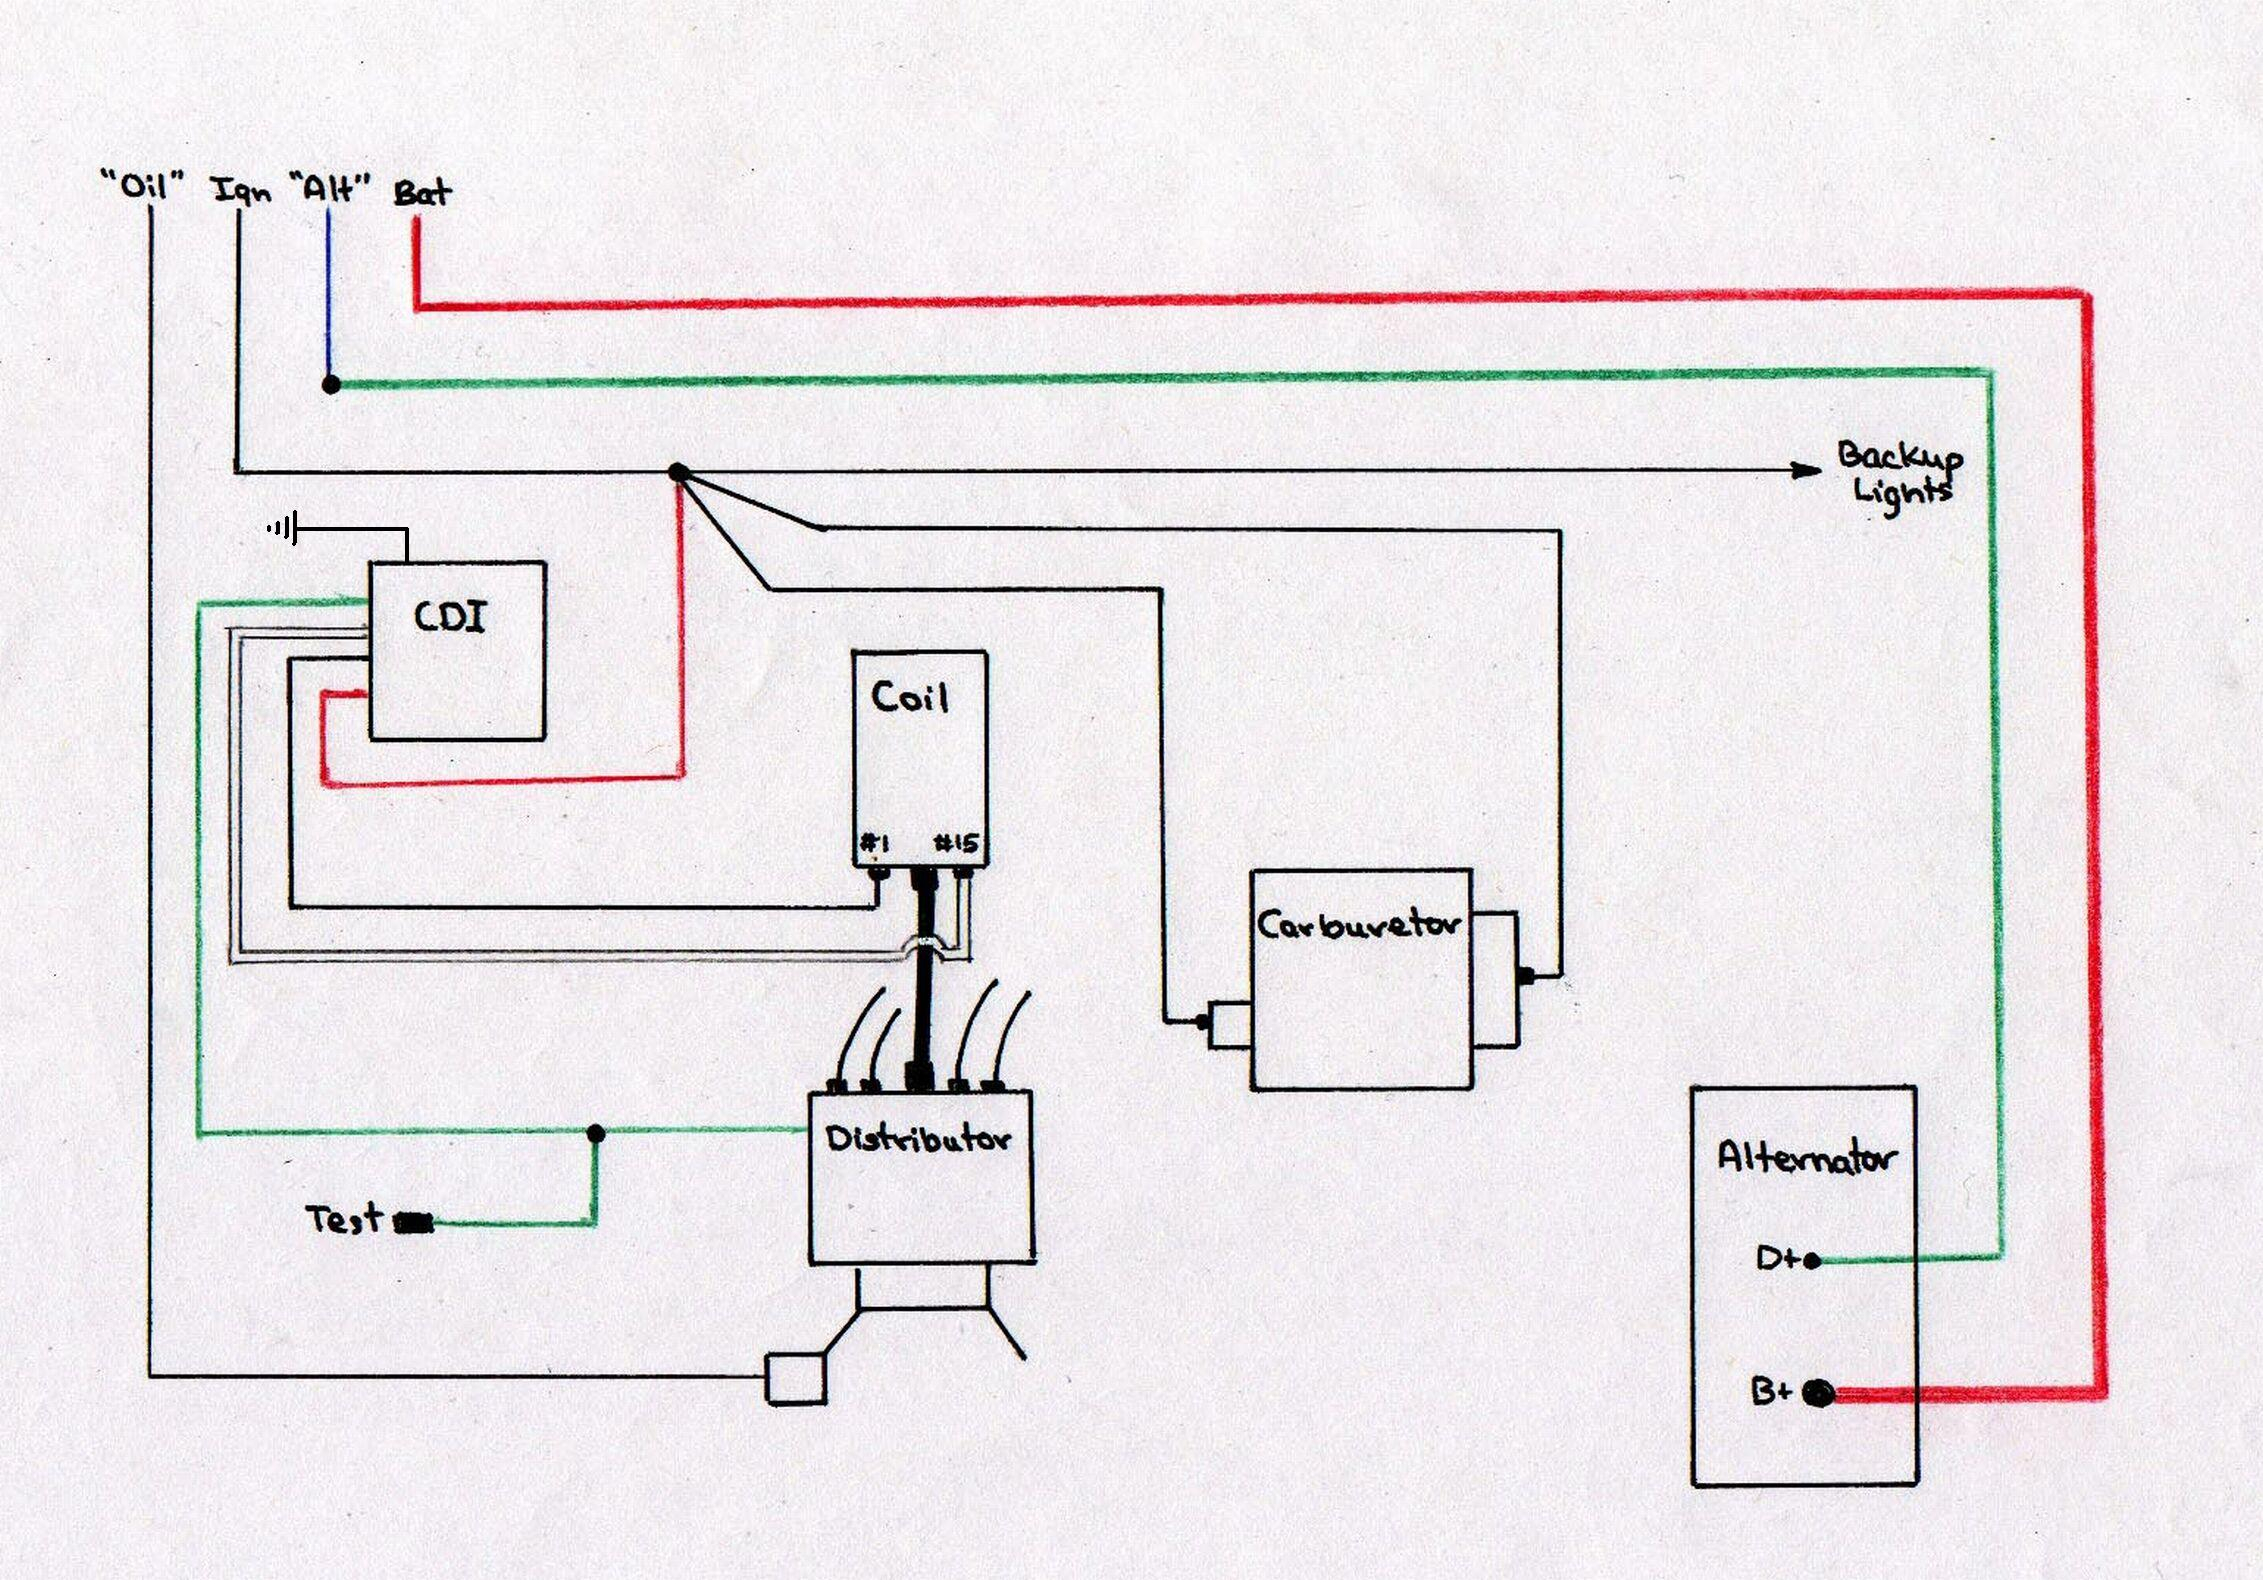 vw ignition coil wiring diagram 061 schematic jpg cdi and alternator wiring audi coil conversion